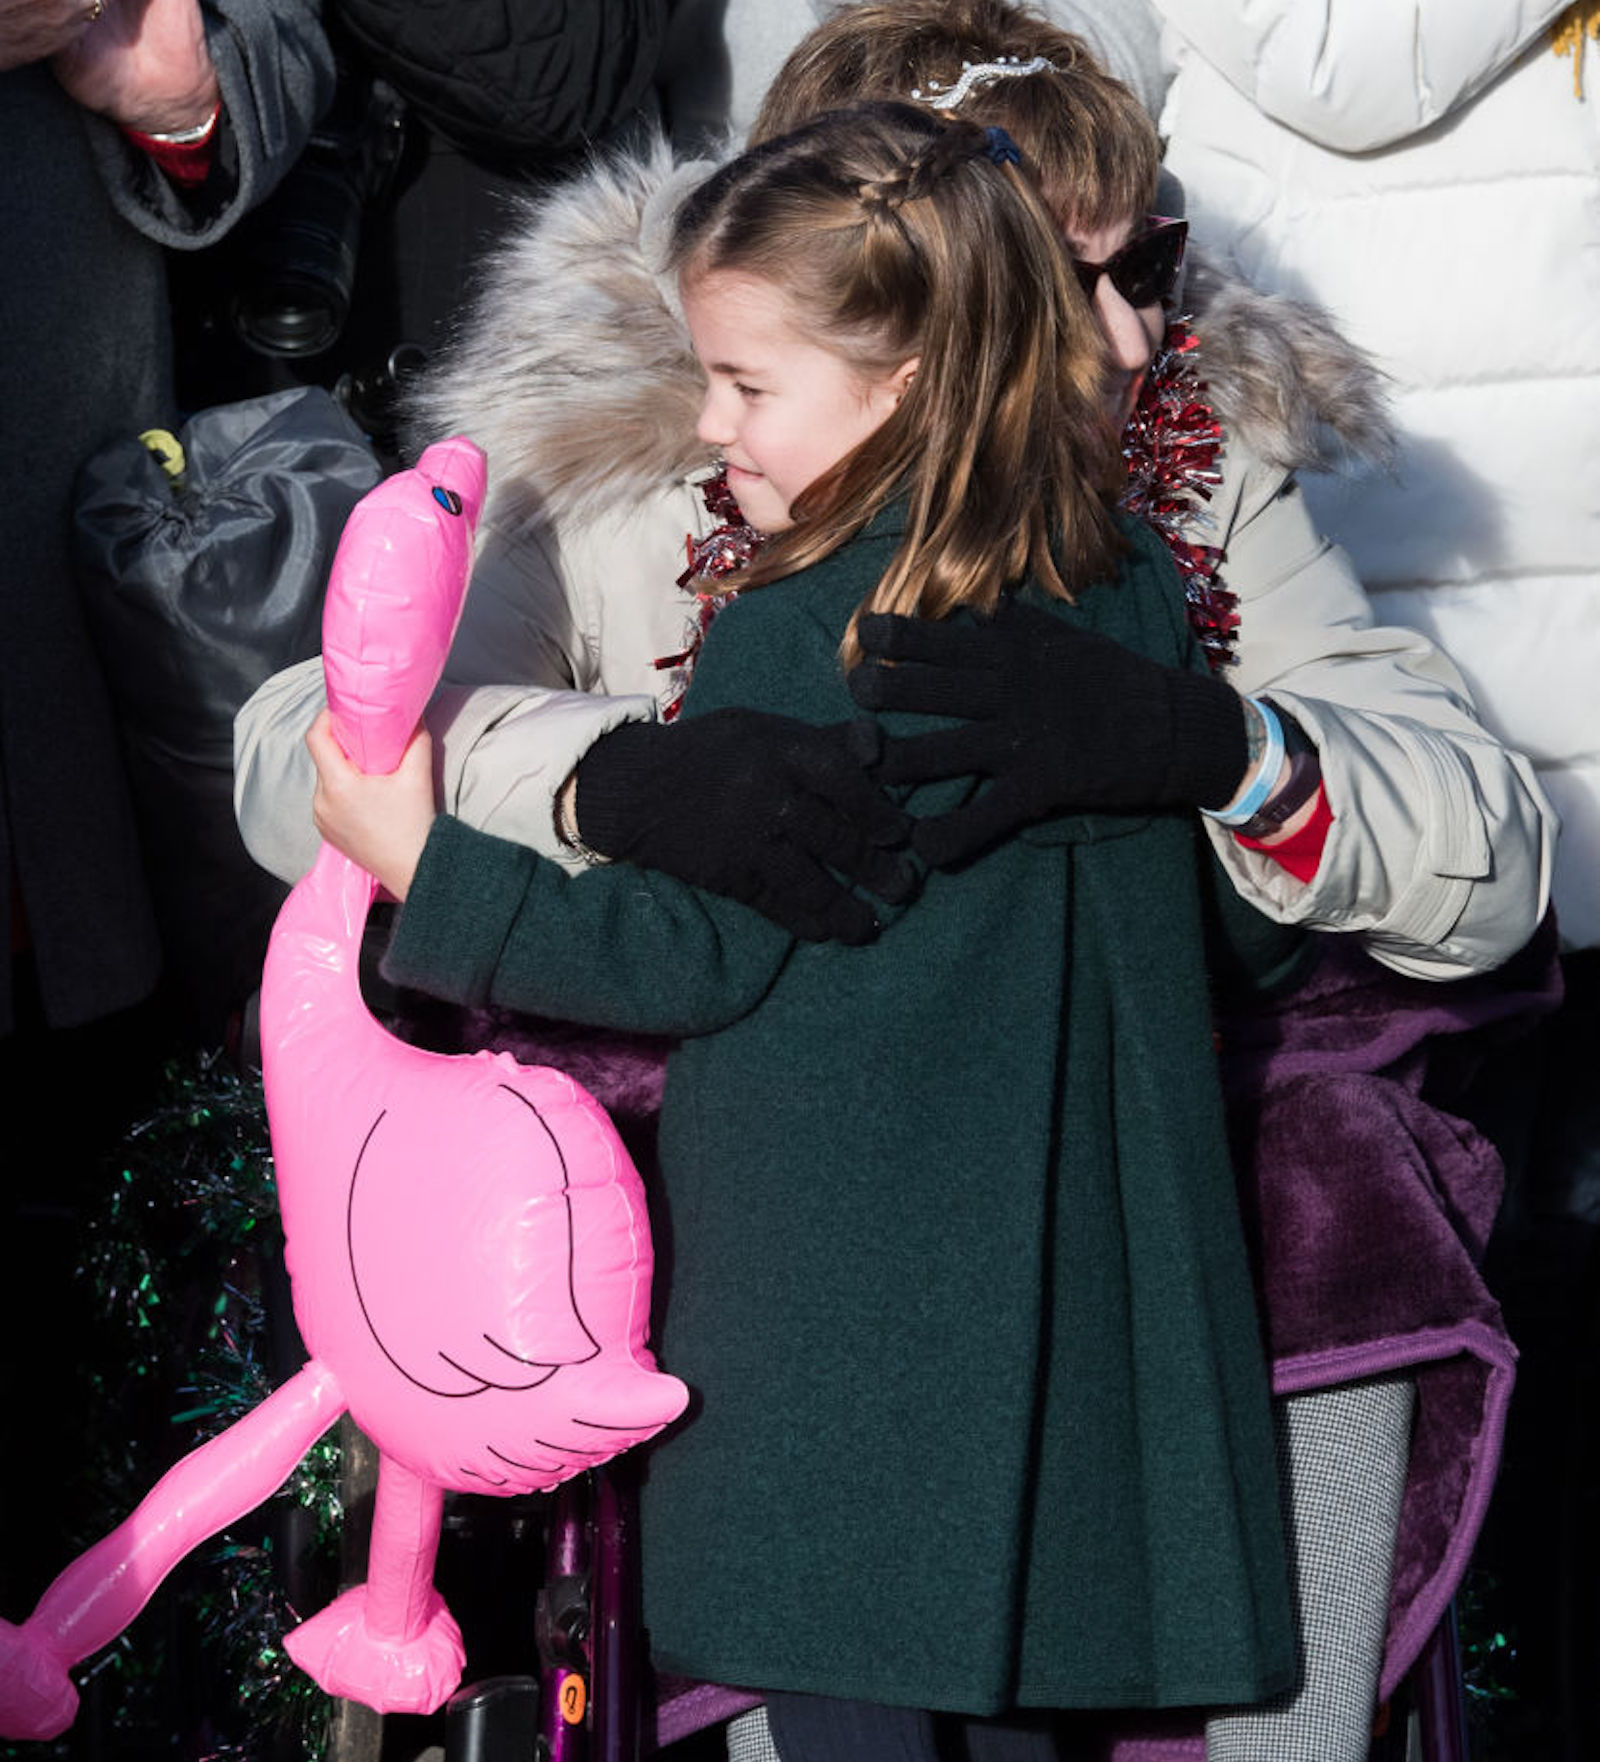 Princess Charlotte of Cambridge is given a hug by a wellwisher as she attends the Christmas Day Church service at Church of St Mary Magdalene